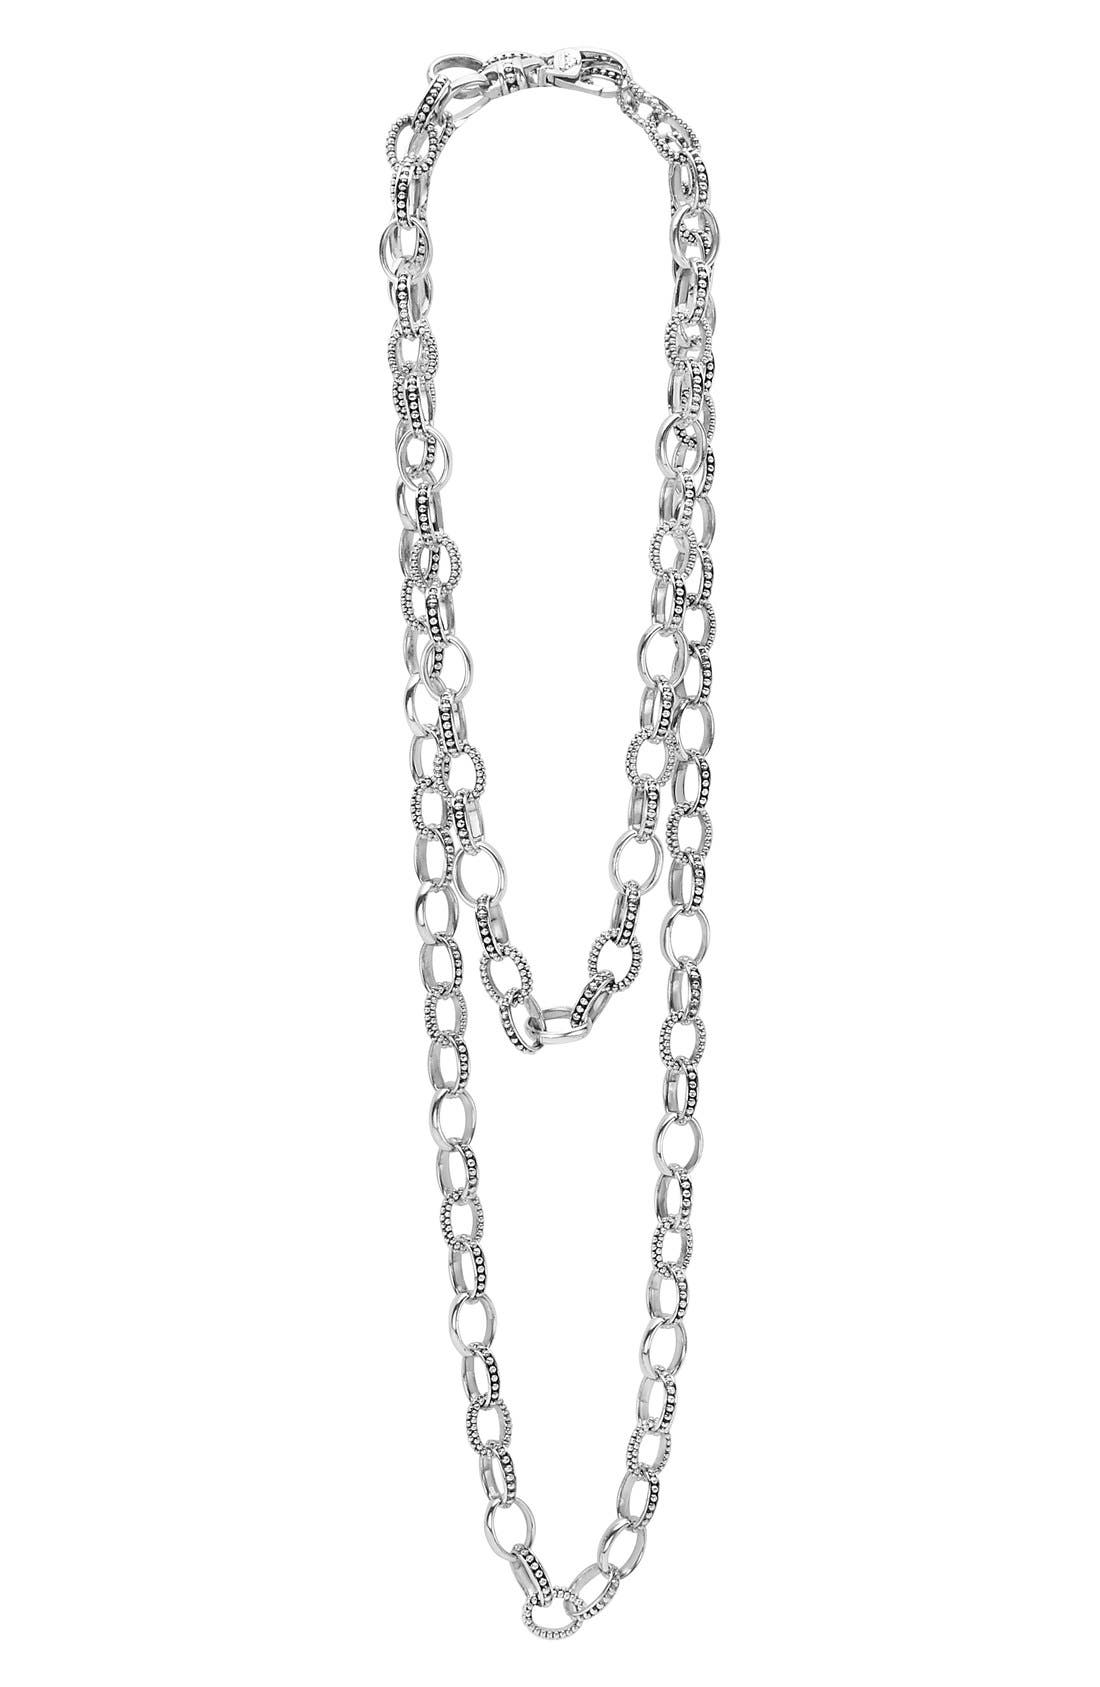 Main Image - LAGOS 'Link' Caviar Chain Necklace